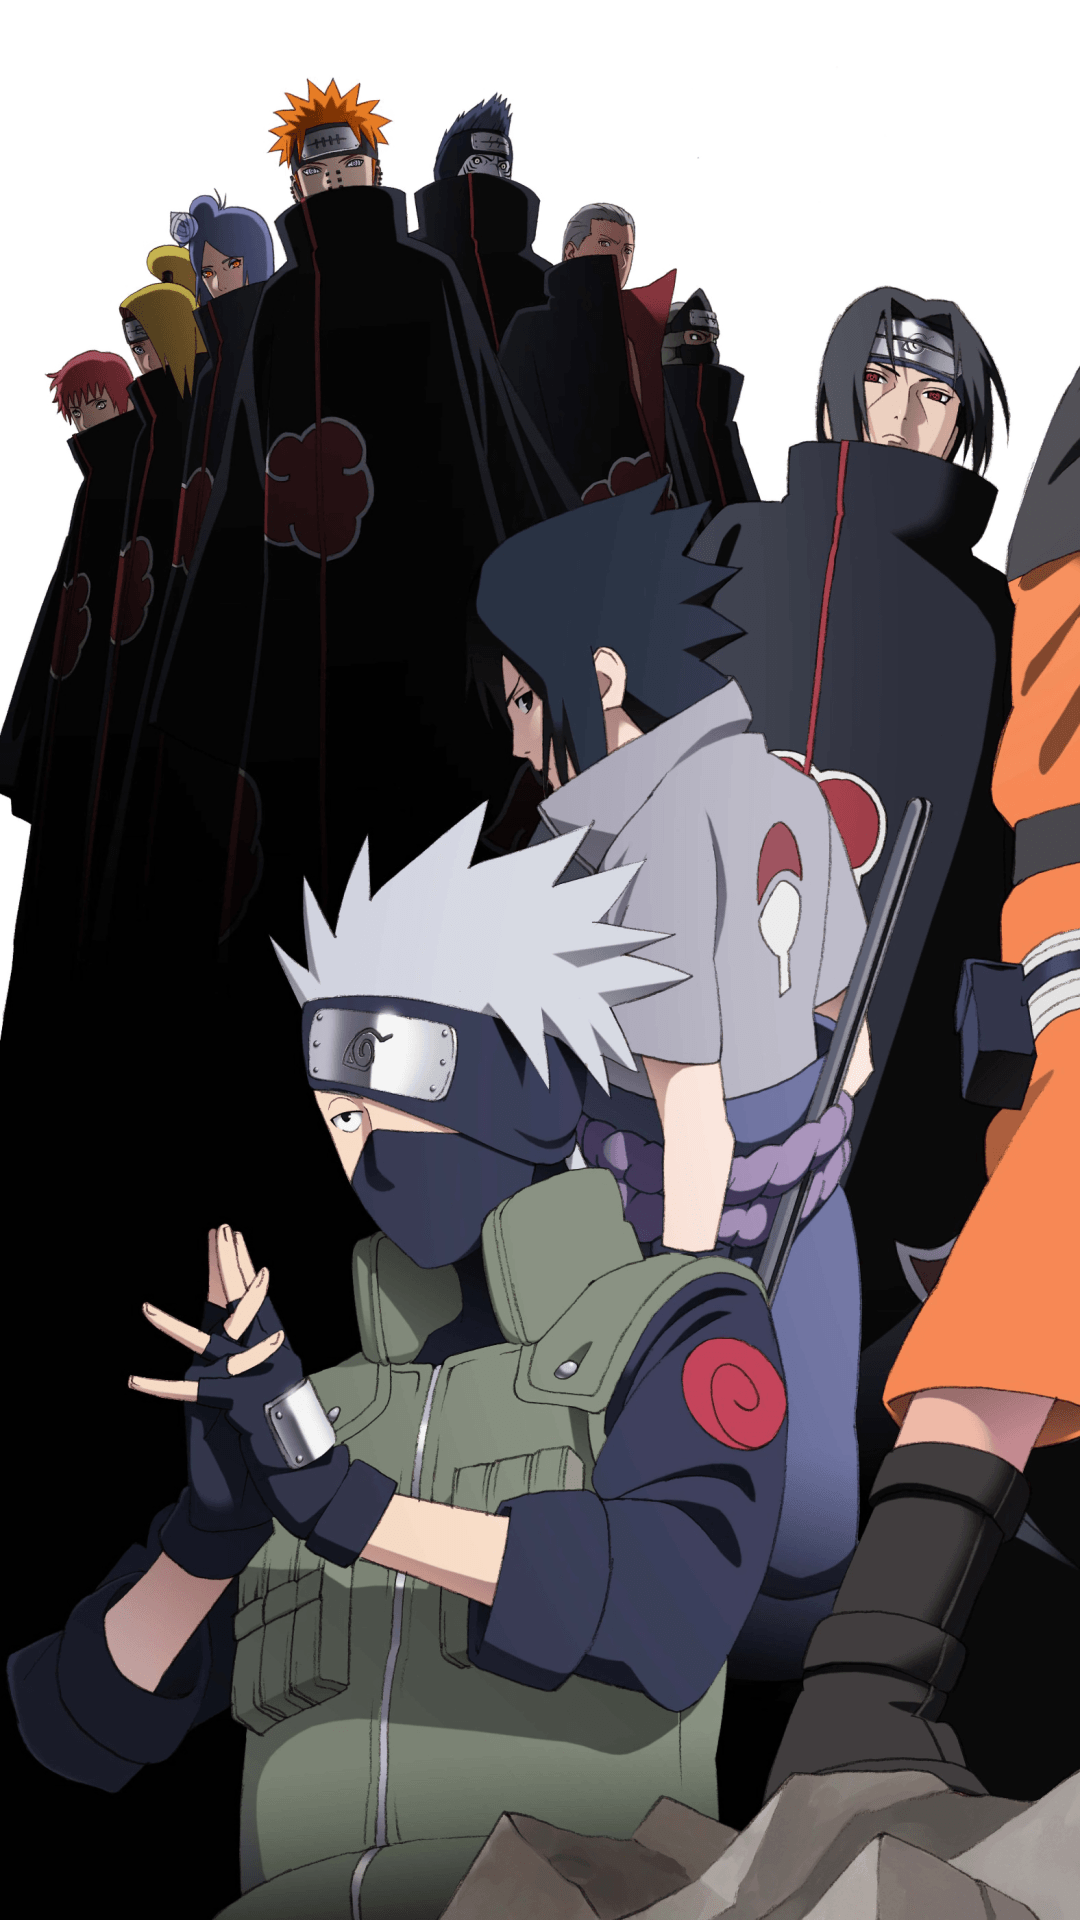 1080x1920 Anime/Naruto (1080x1920) Wallpaper ID: 644754 - Mobile Abyss